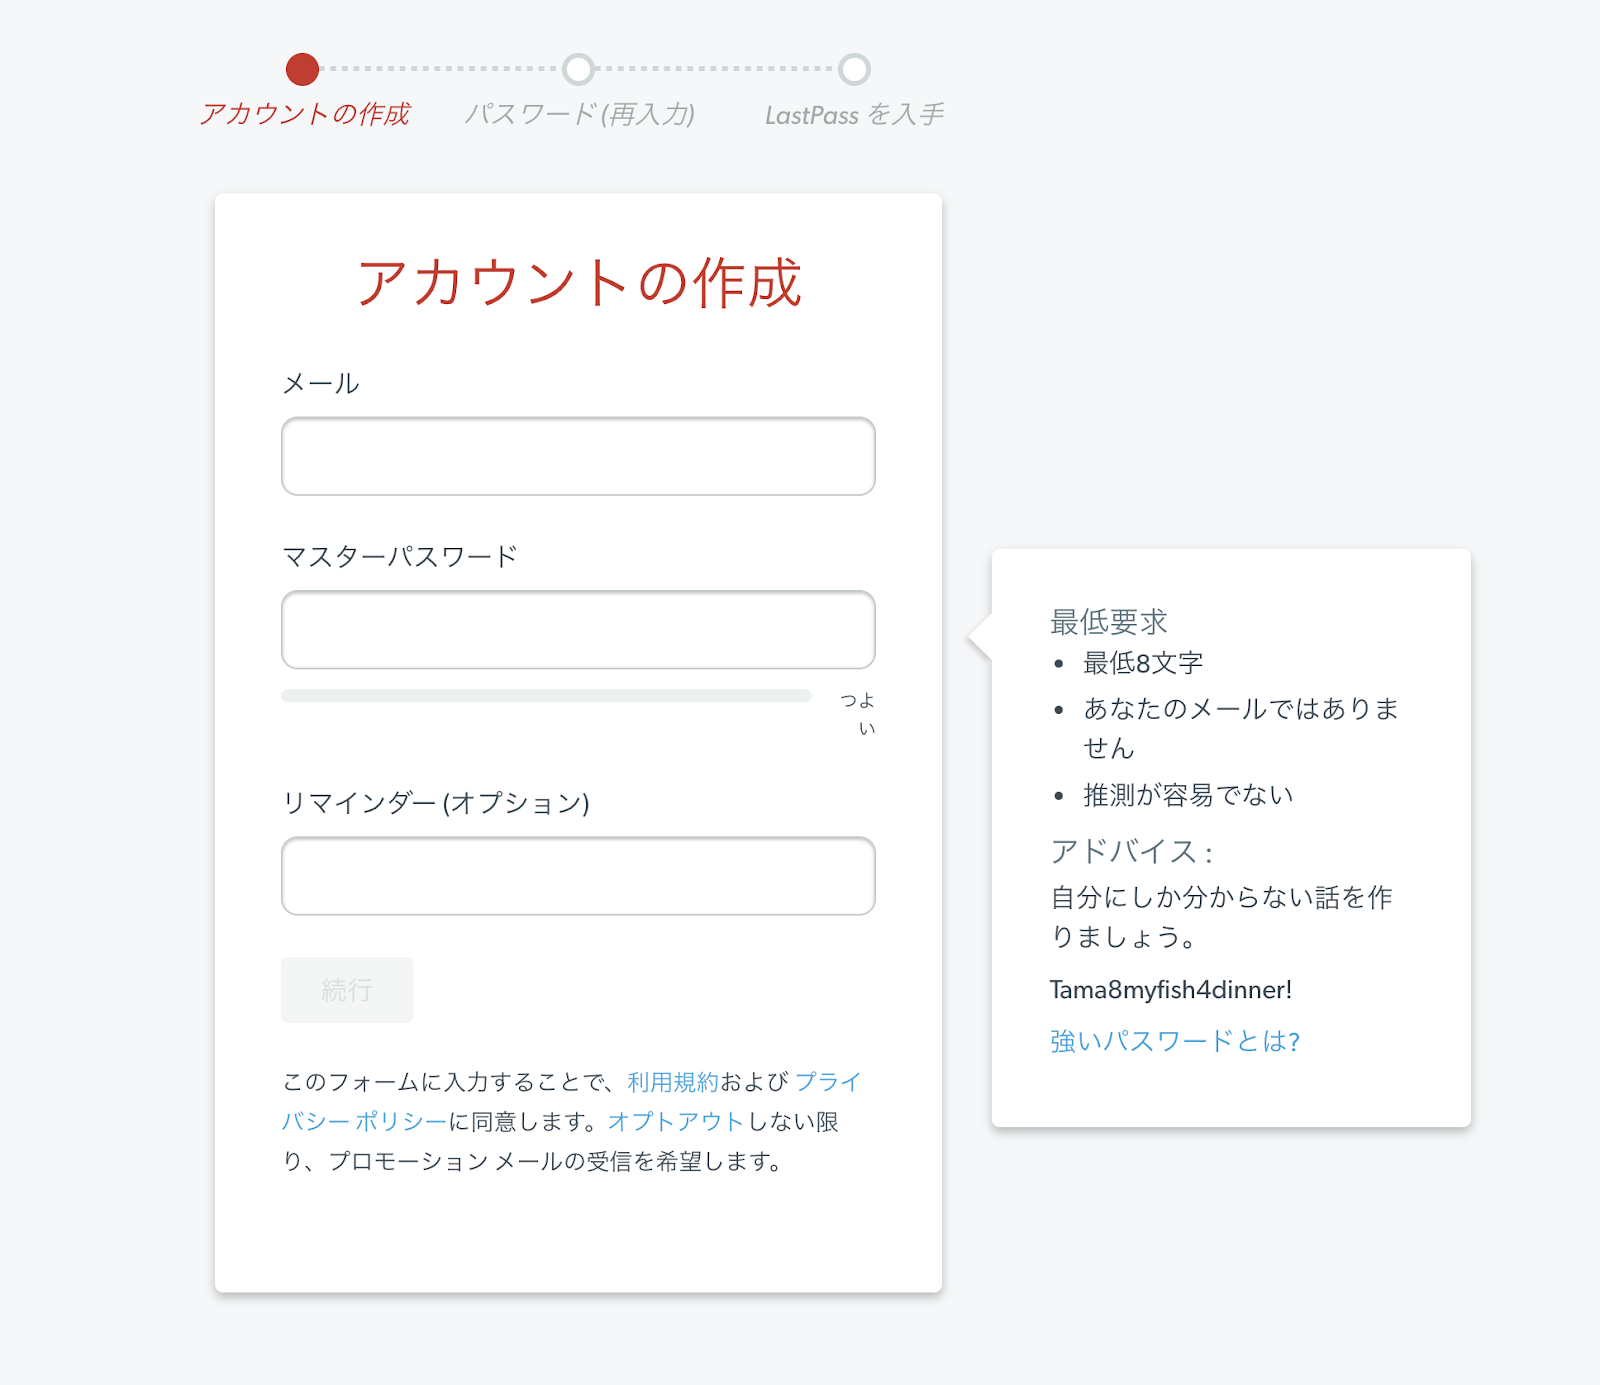 Meet LastPass, a service that lets you easily manage